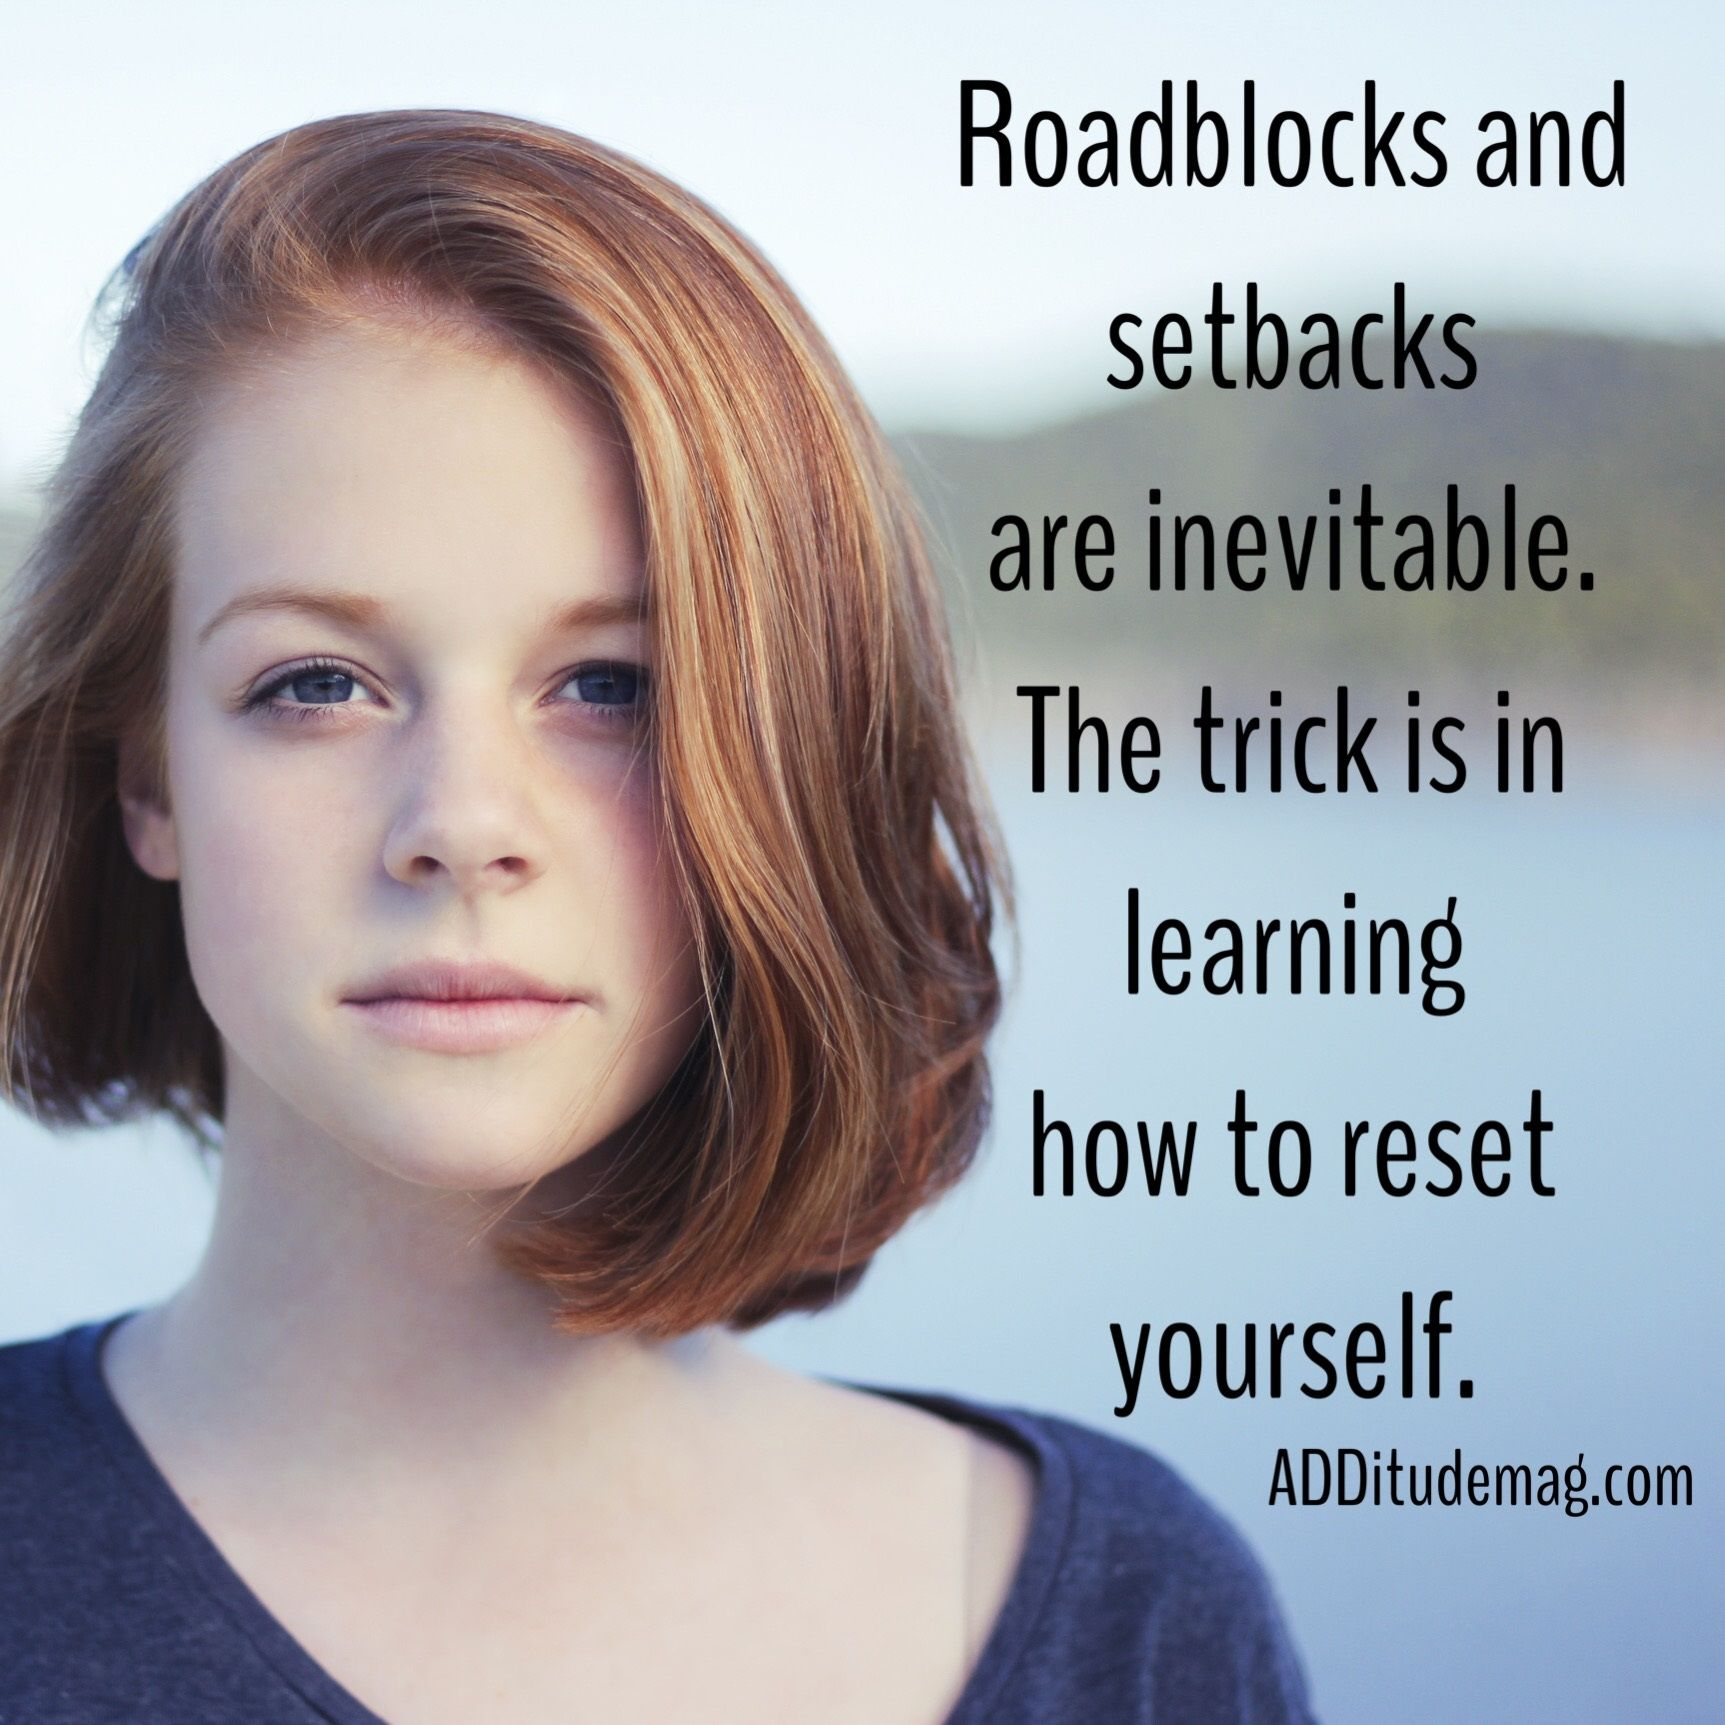 You're going to hit roadblocks and setbacks. That's inevitable. So the trick is in learning how to reset yourself. Use these 6 helpful tools.